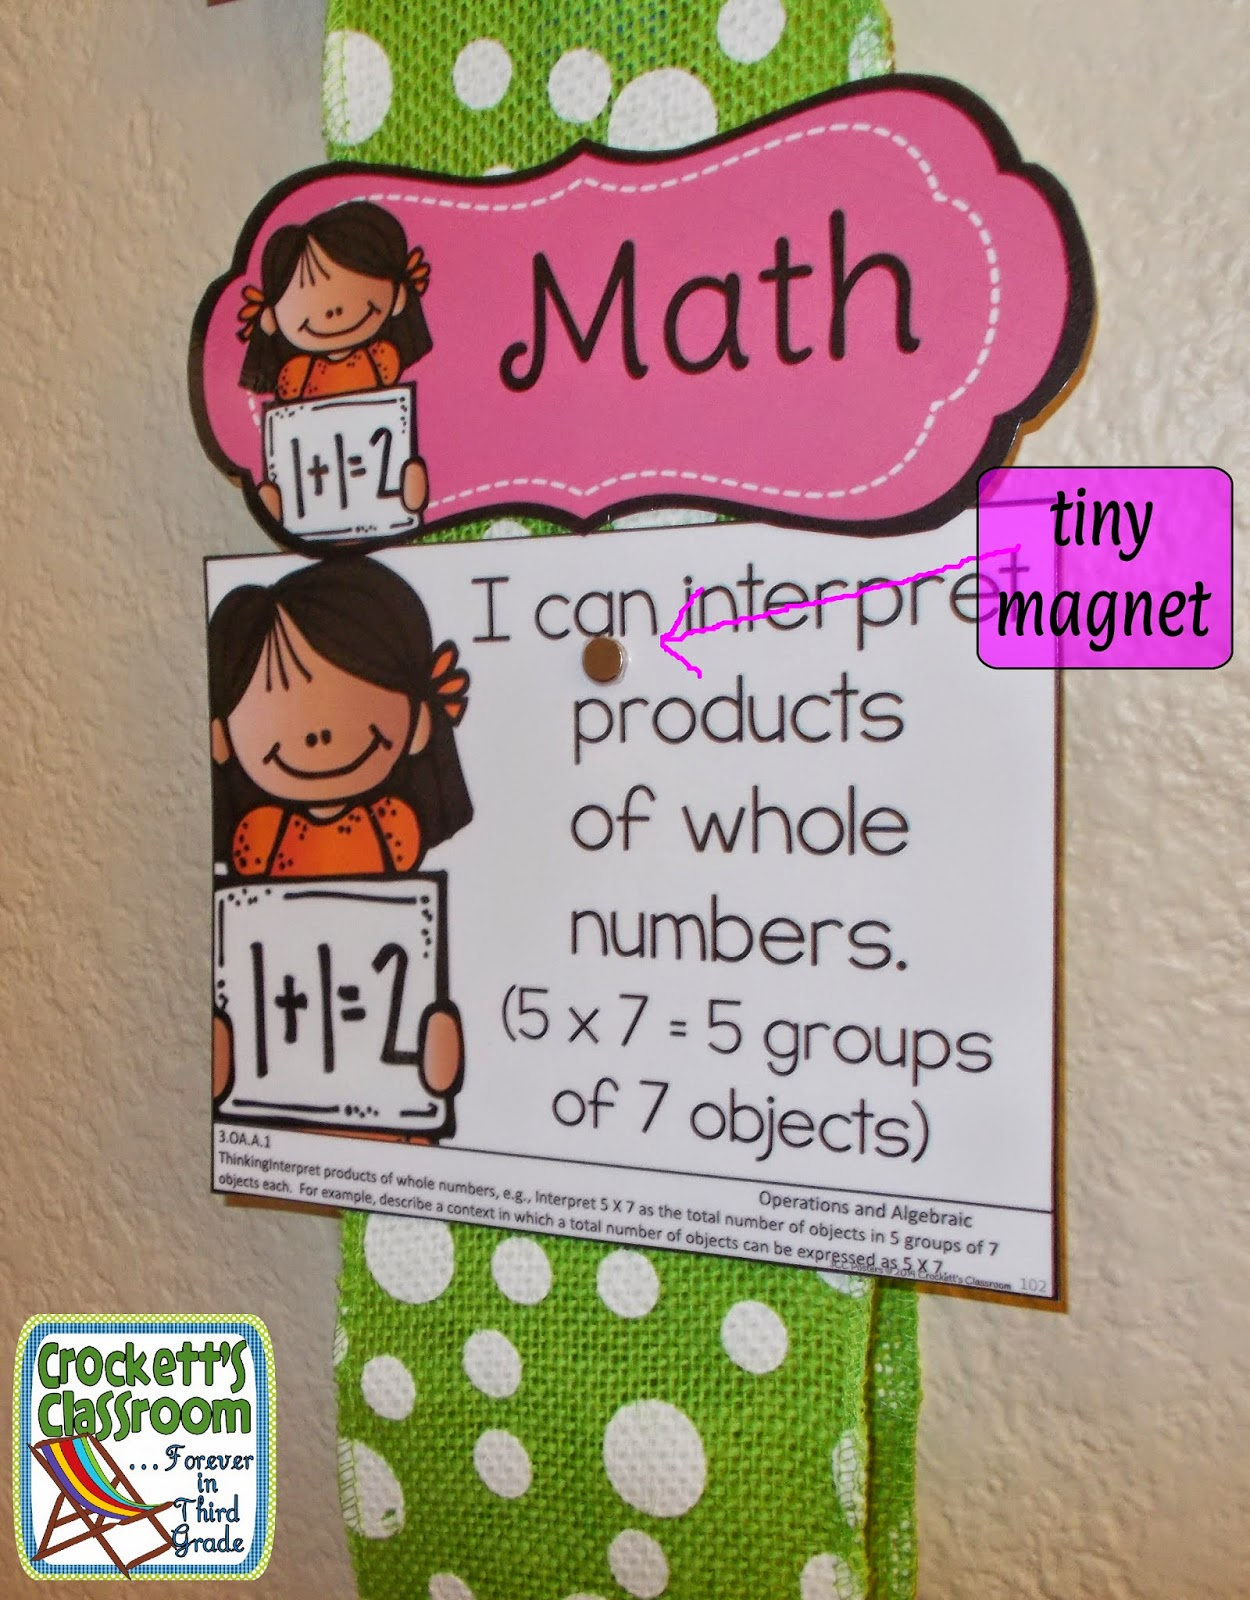 Tiny magnet holds small signs in a display--Crockett's Classroom